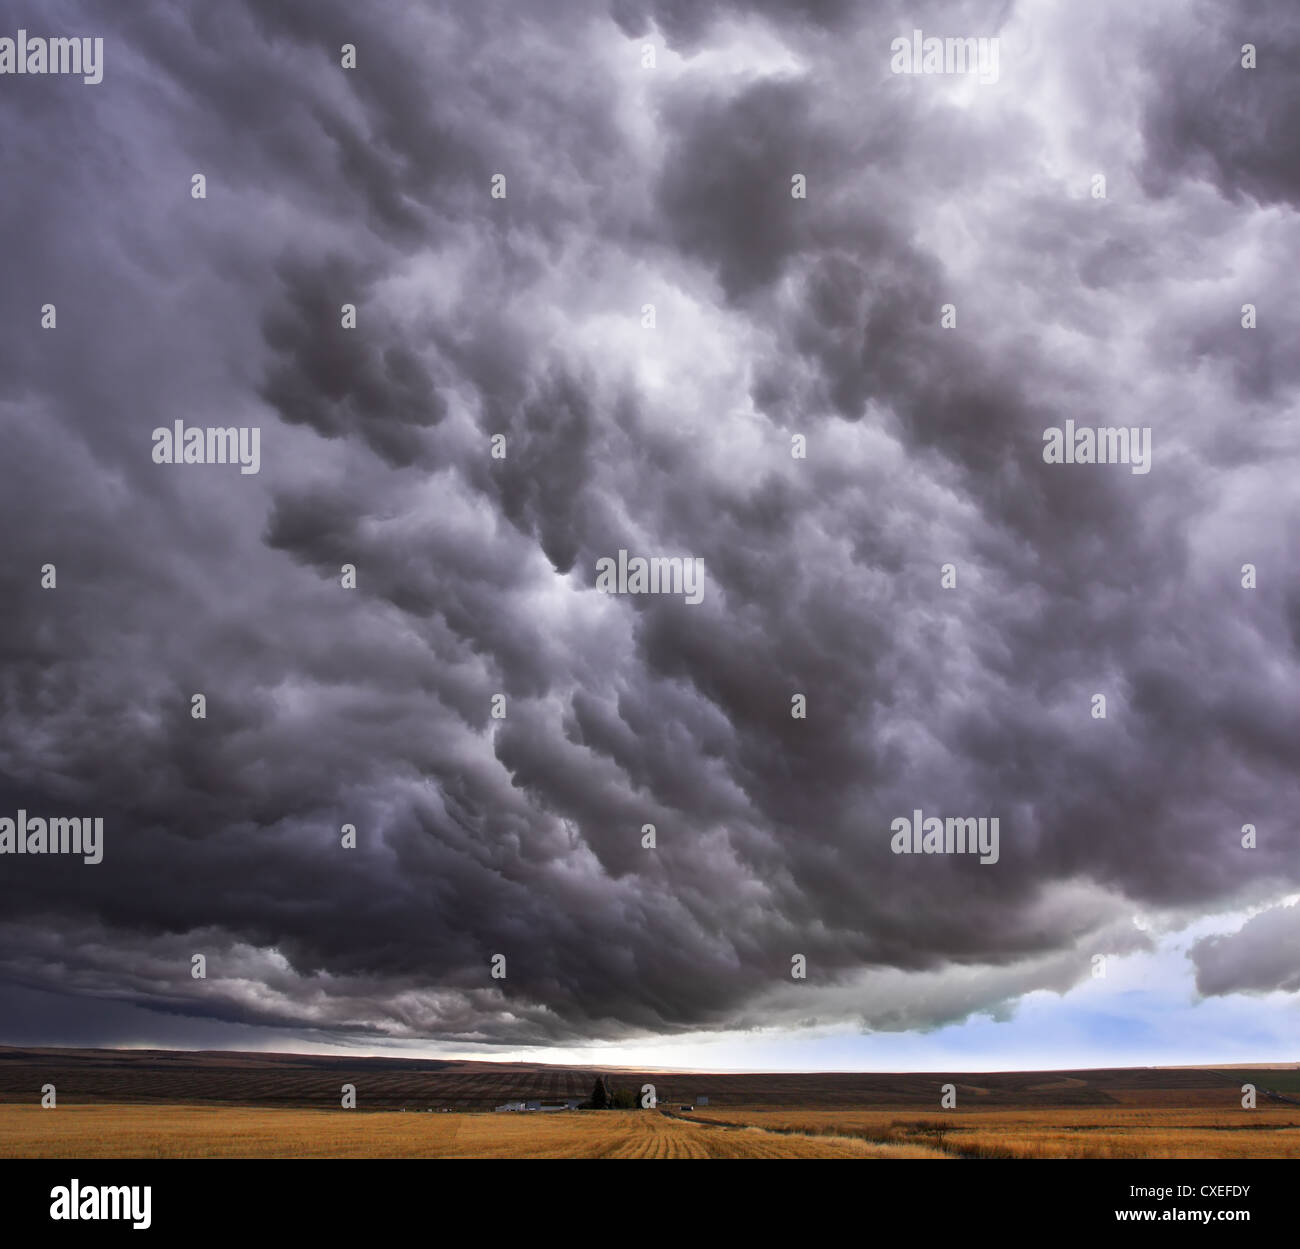 Enormous storm cloud above an  field - Stock Image